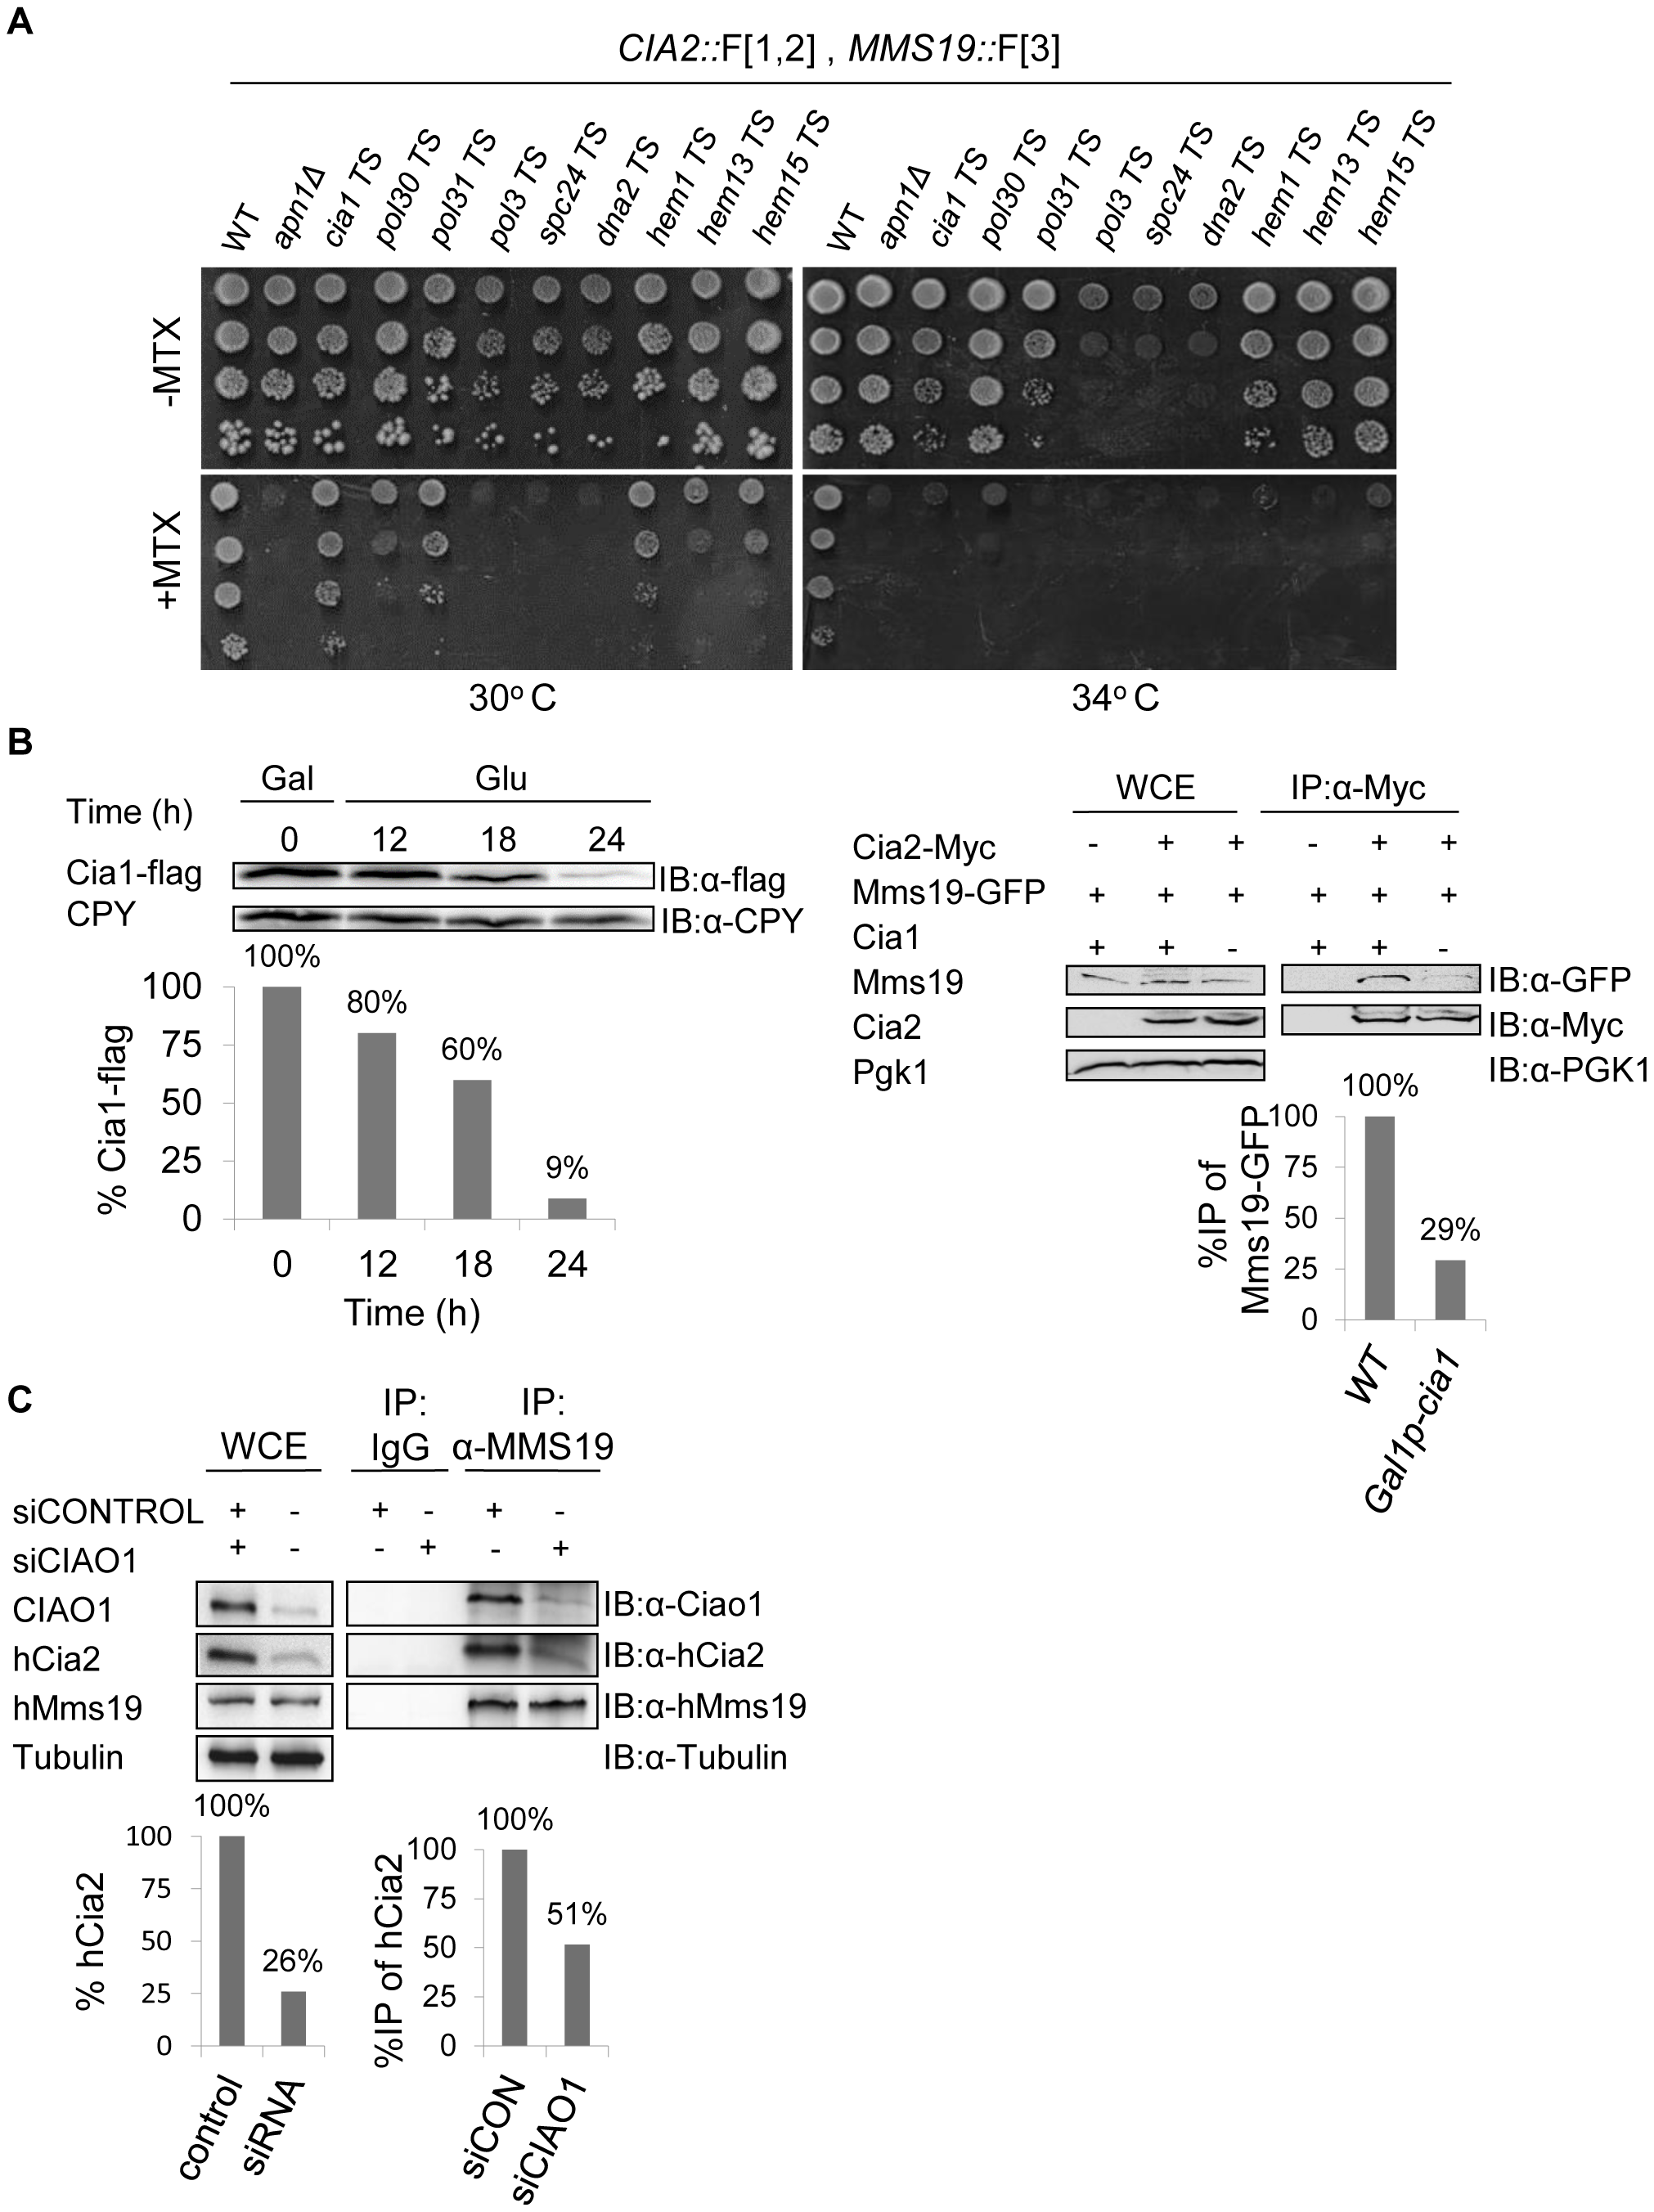 (A) Retesting of mutants for impaired growth on MTX-containing medium.